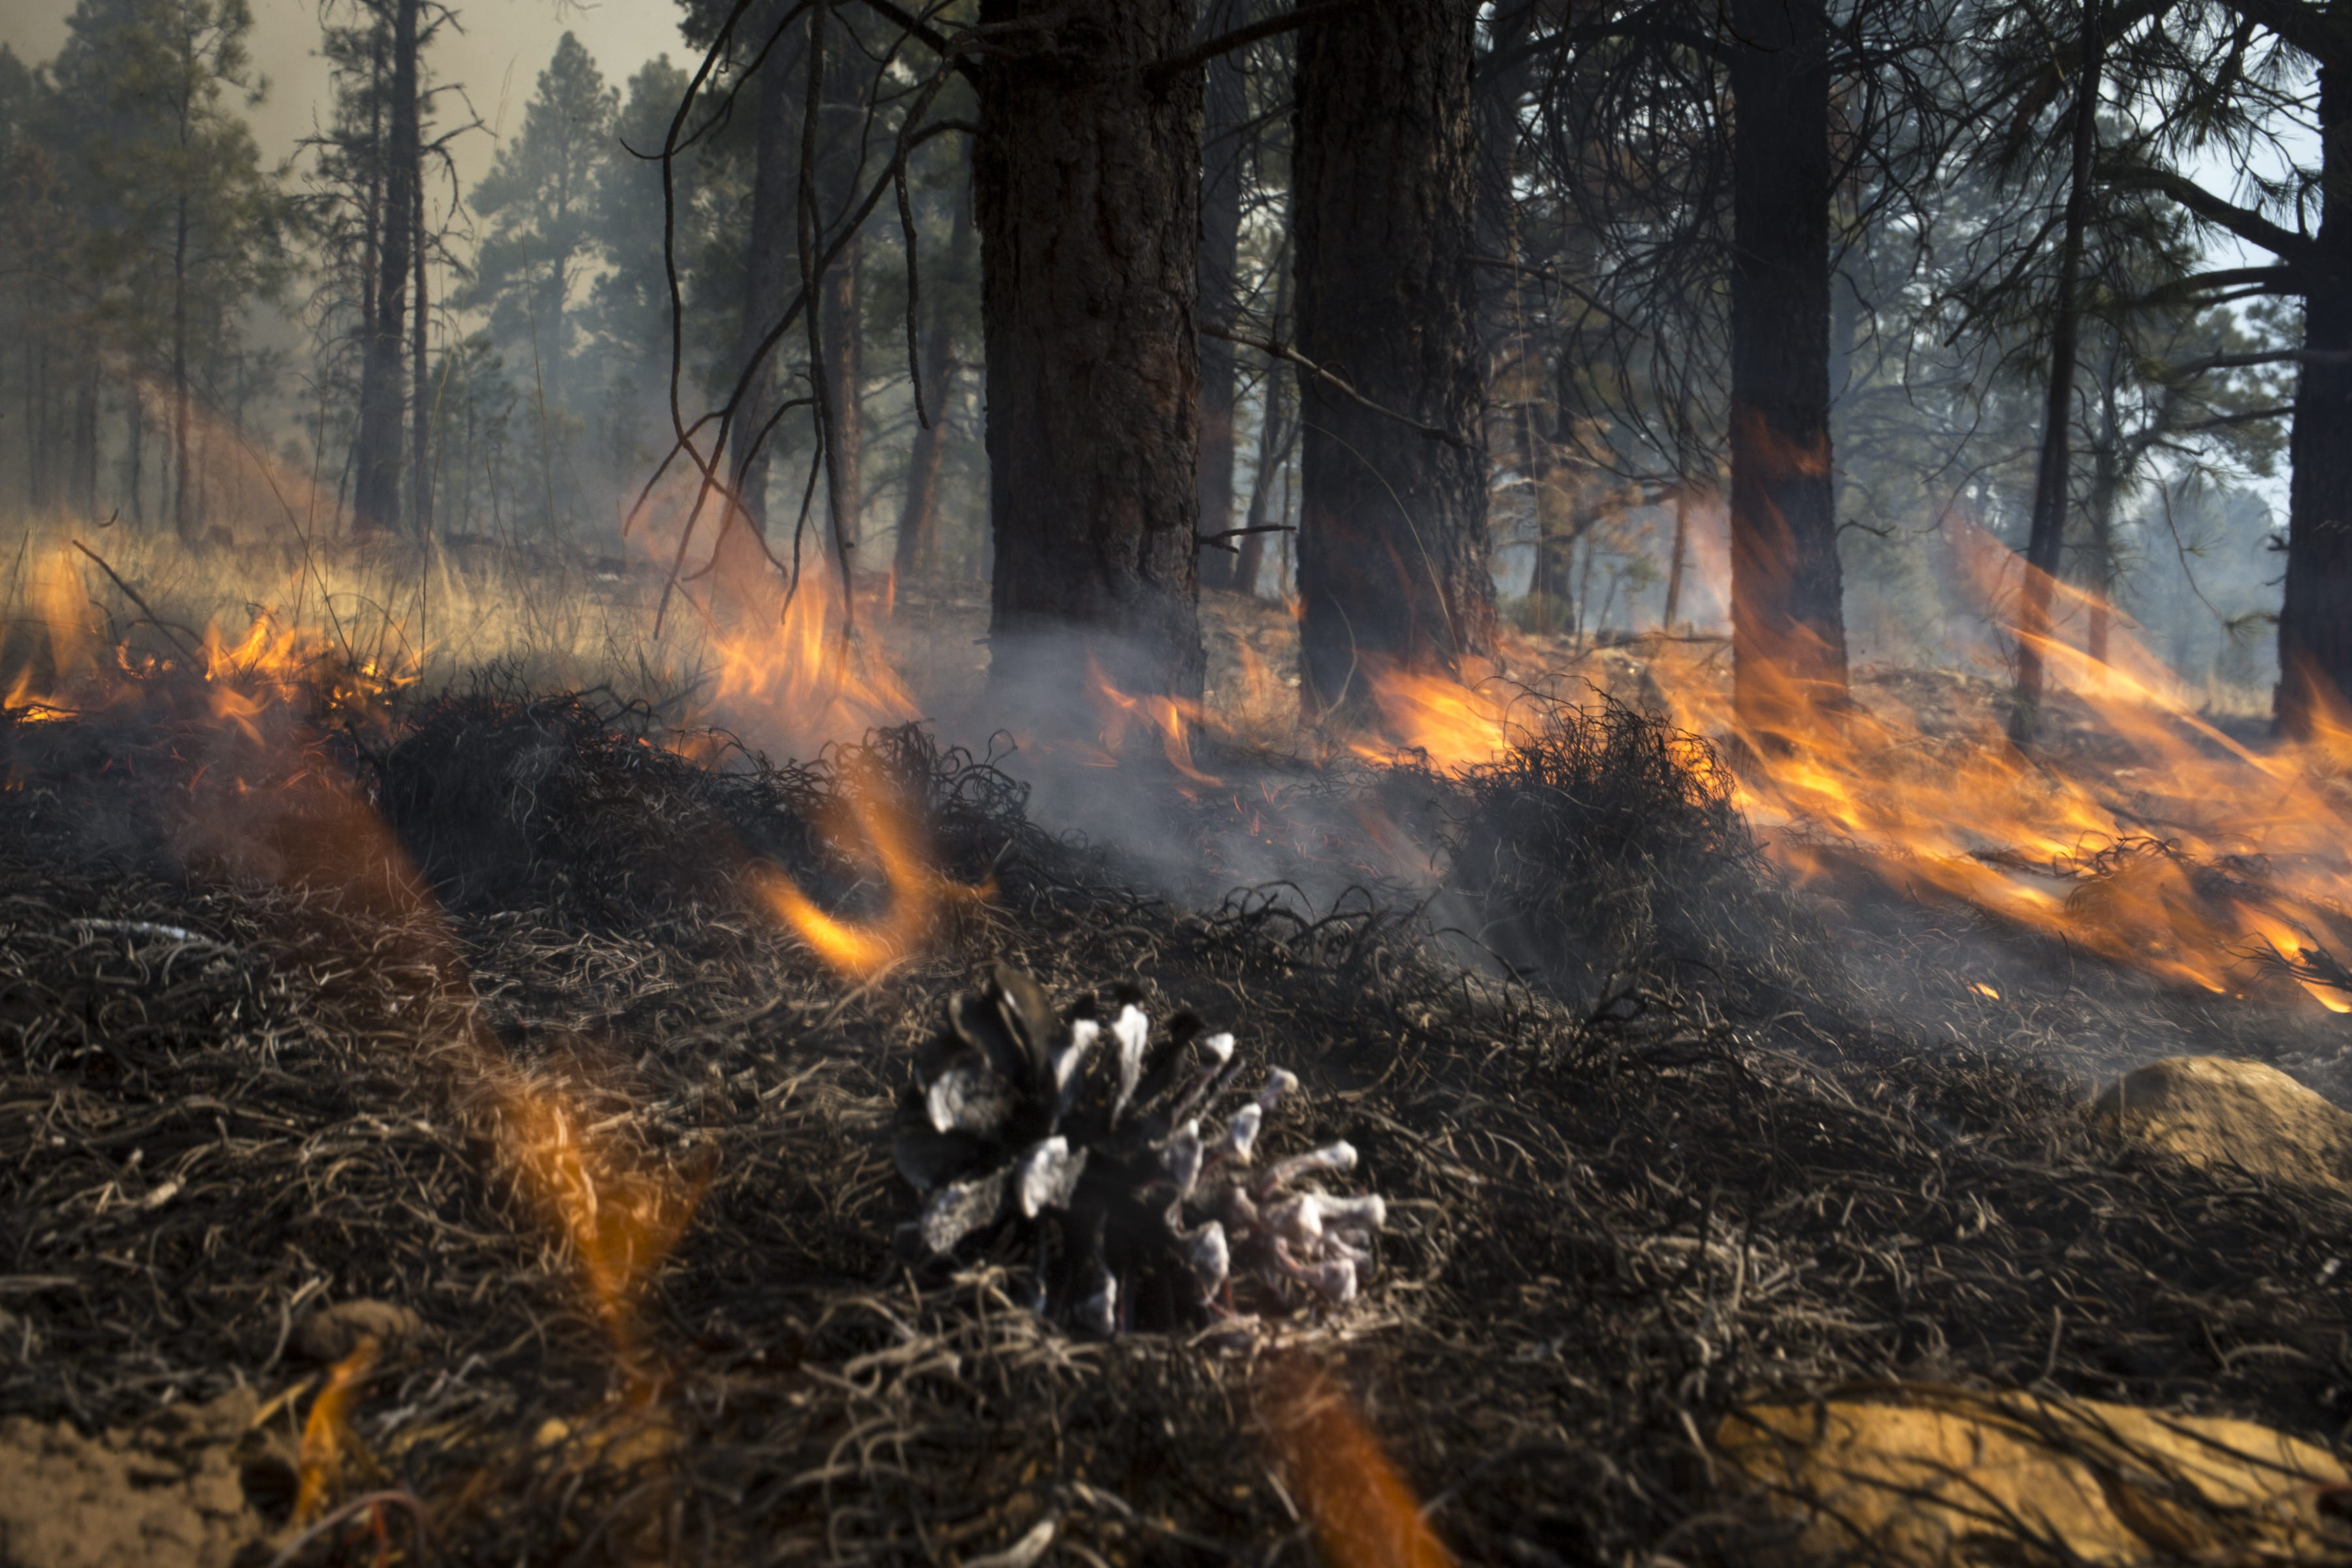 Prescribed burns are another tool in the fight to save Arizona forests. Here, in Flagstaff, controlled fires were used to clear the forest floor of fuels.